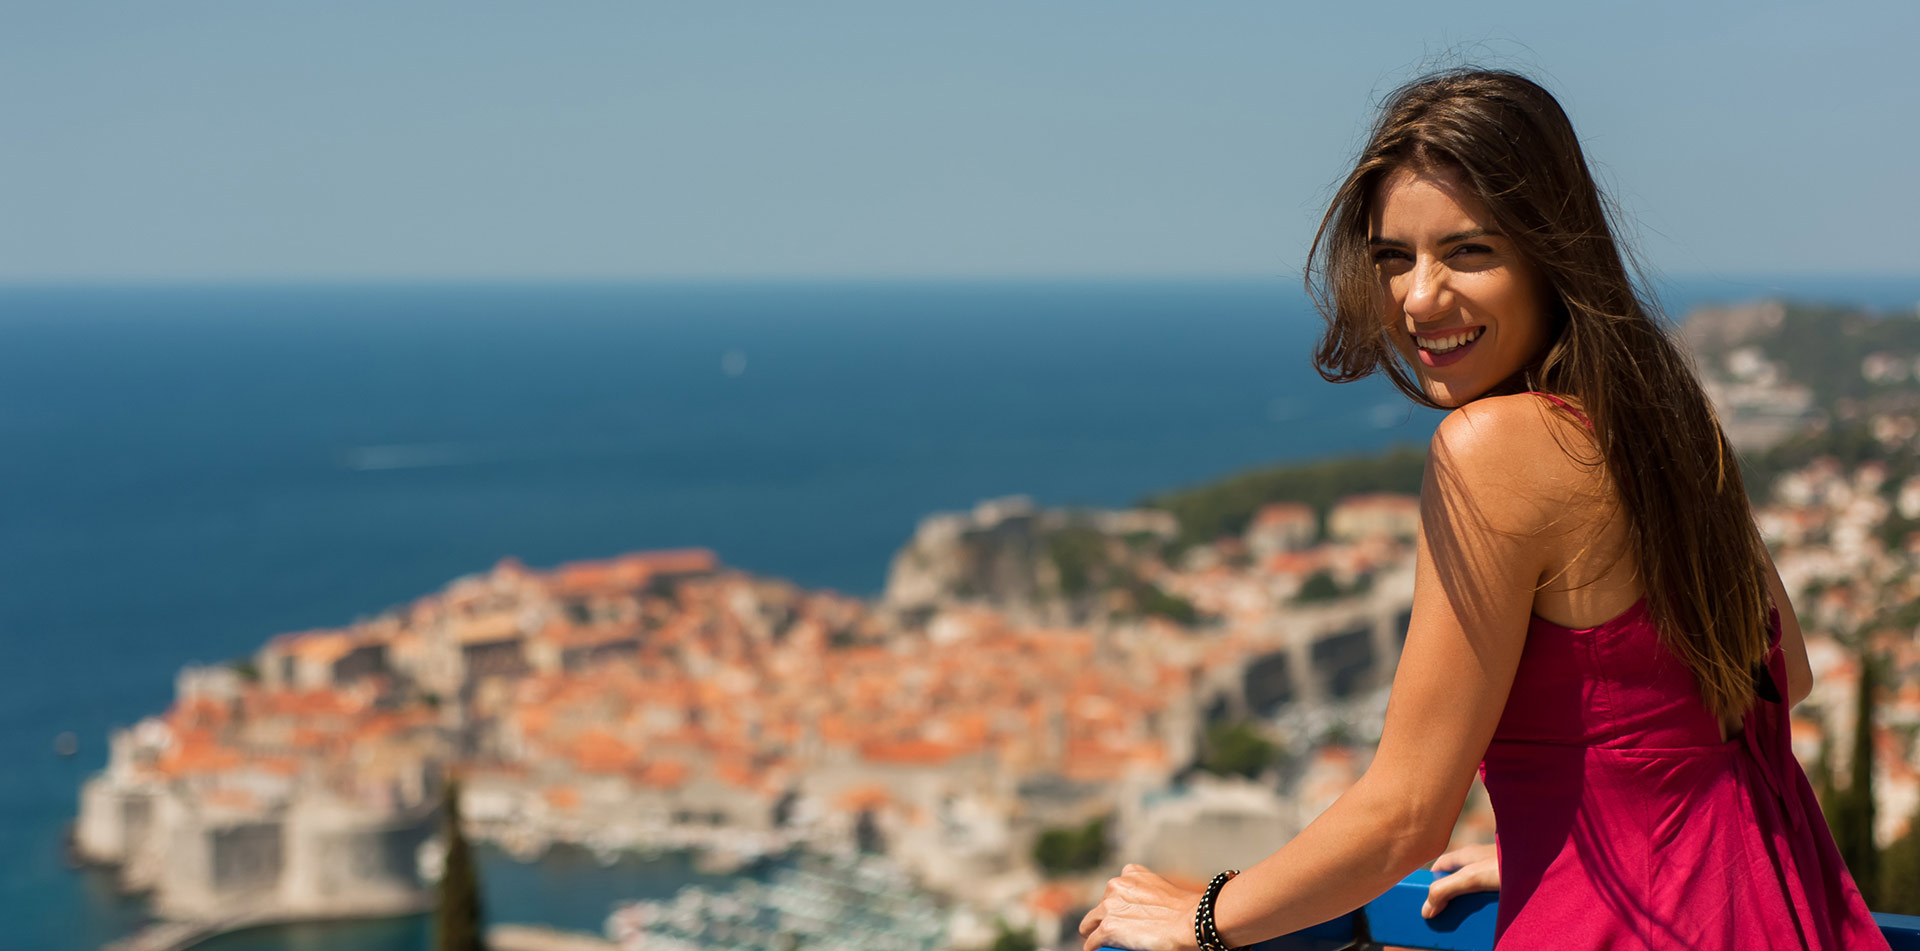 Europe Croatia Dubrovnik scenic Dalmatian Coast happy young woman smiling beautiful cityscape - luxury vacation destinations